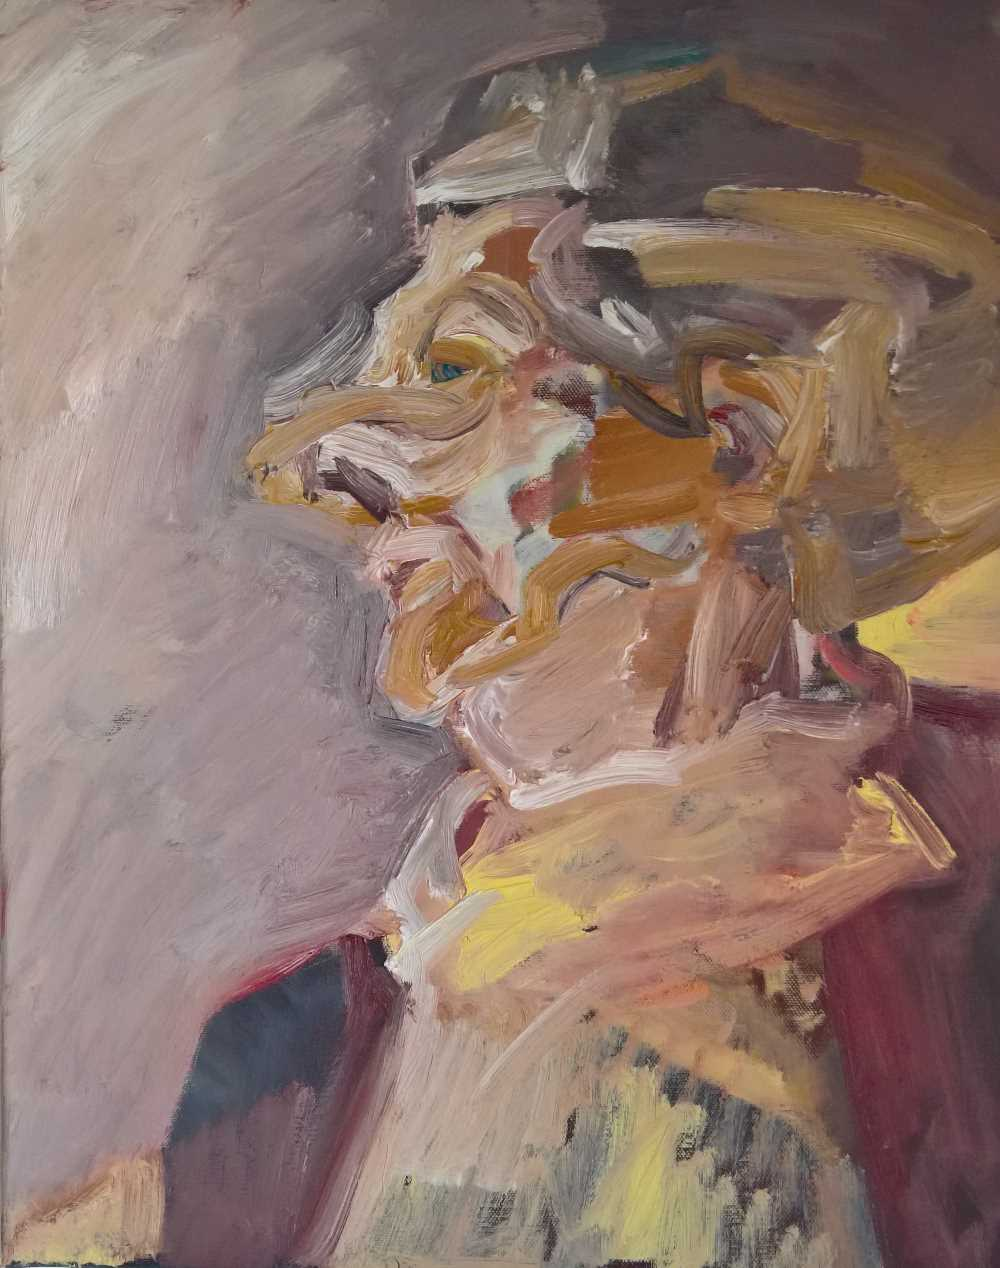 Regina Schween, Wilma, Oil on Canvas, 50cm x 40cm x 1.8cm